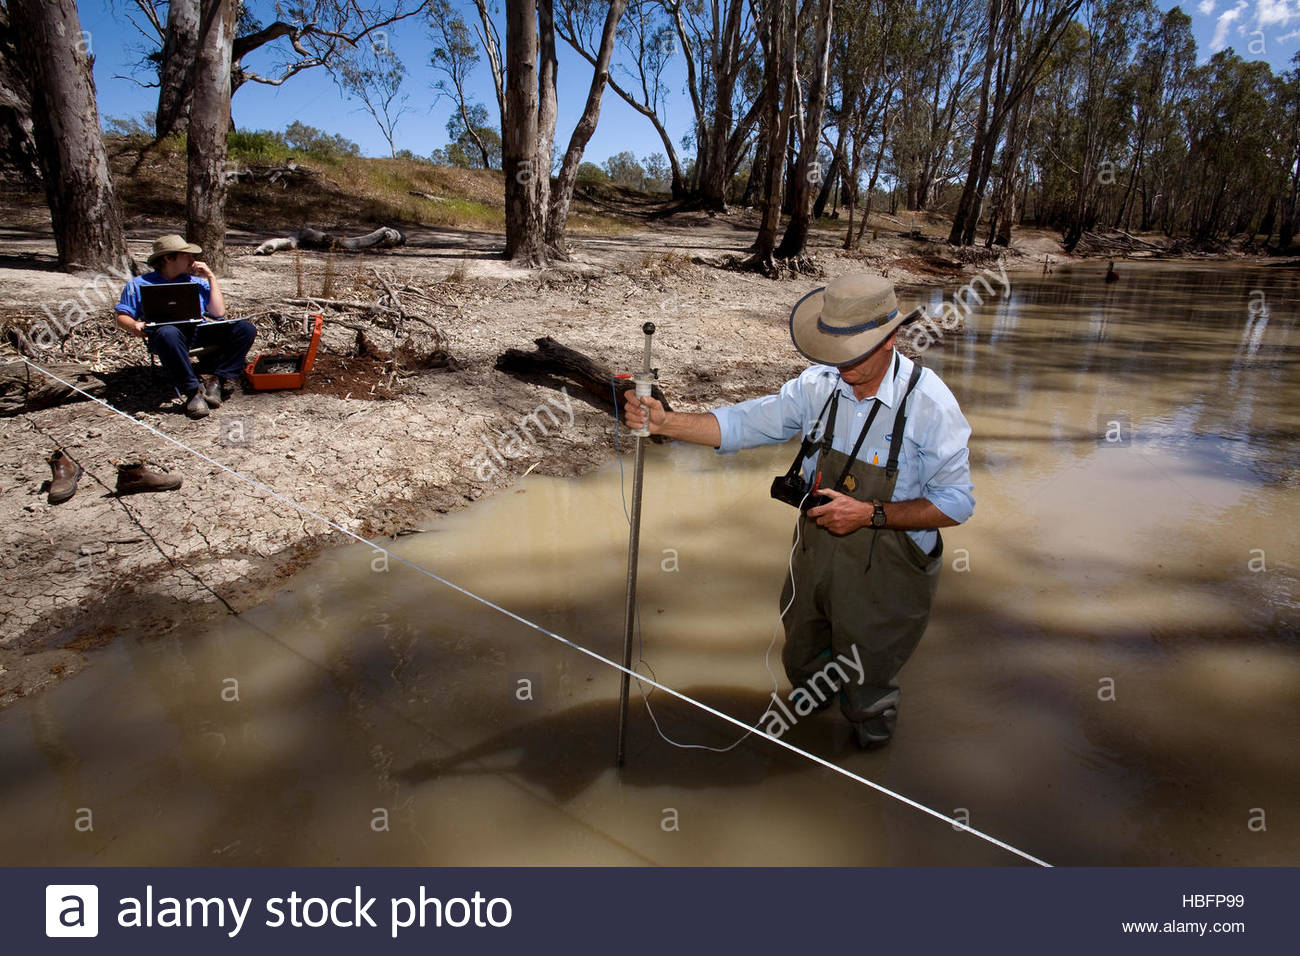 Water flow rates and levels on Broken Creek are measured. - Stock Image